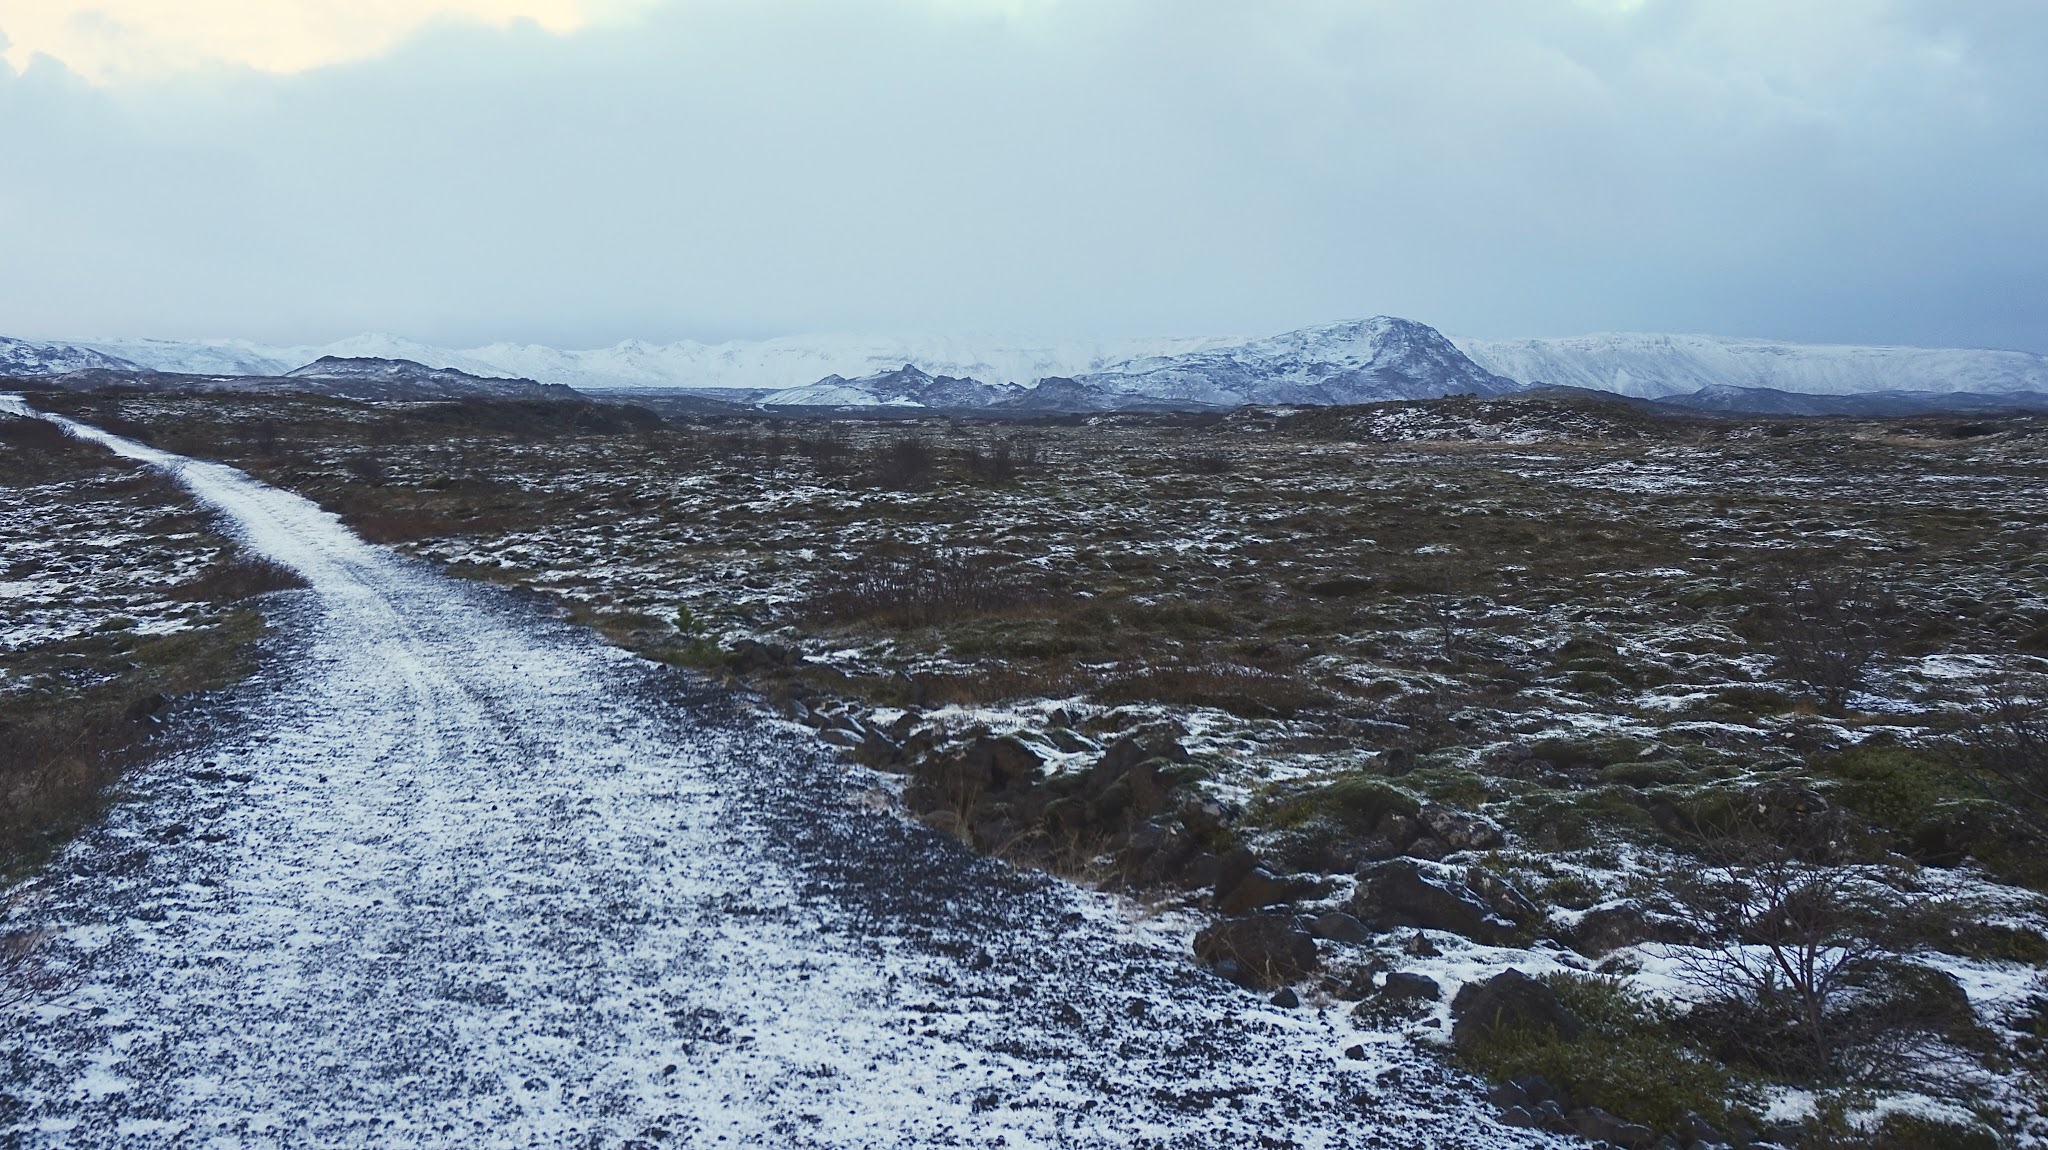 snowy path leading up to snowy mountains, moody sky